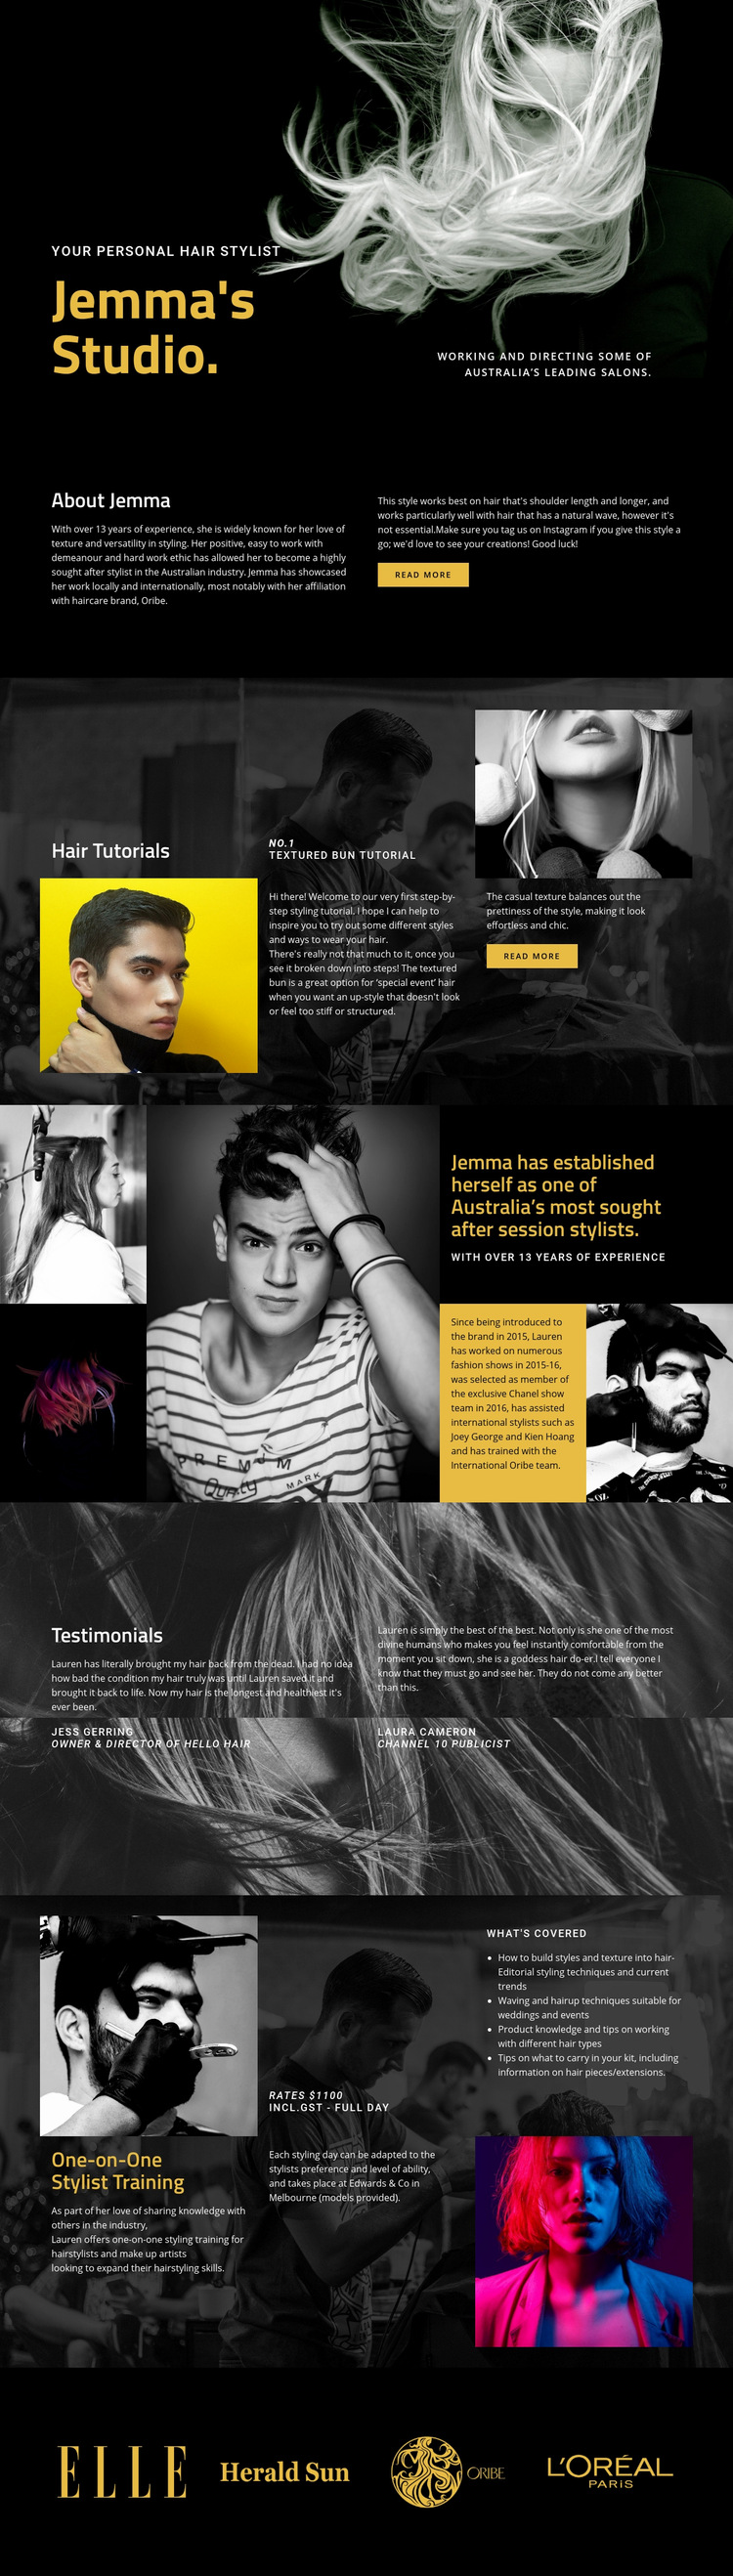 Winning ideas for fashion Web Page Design